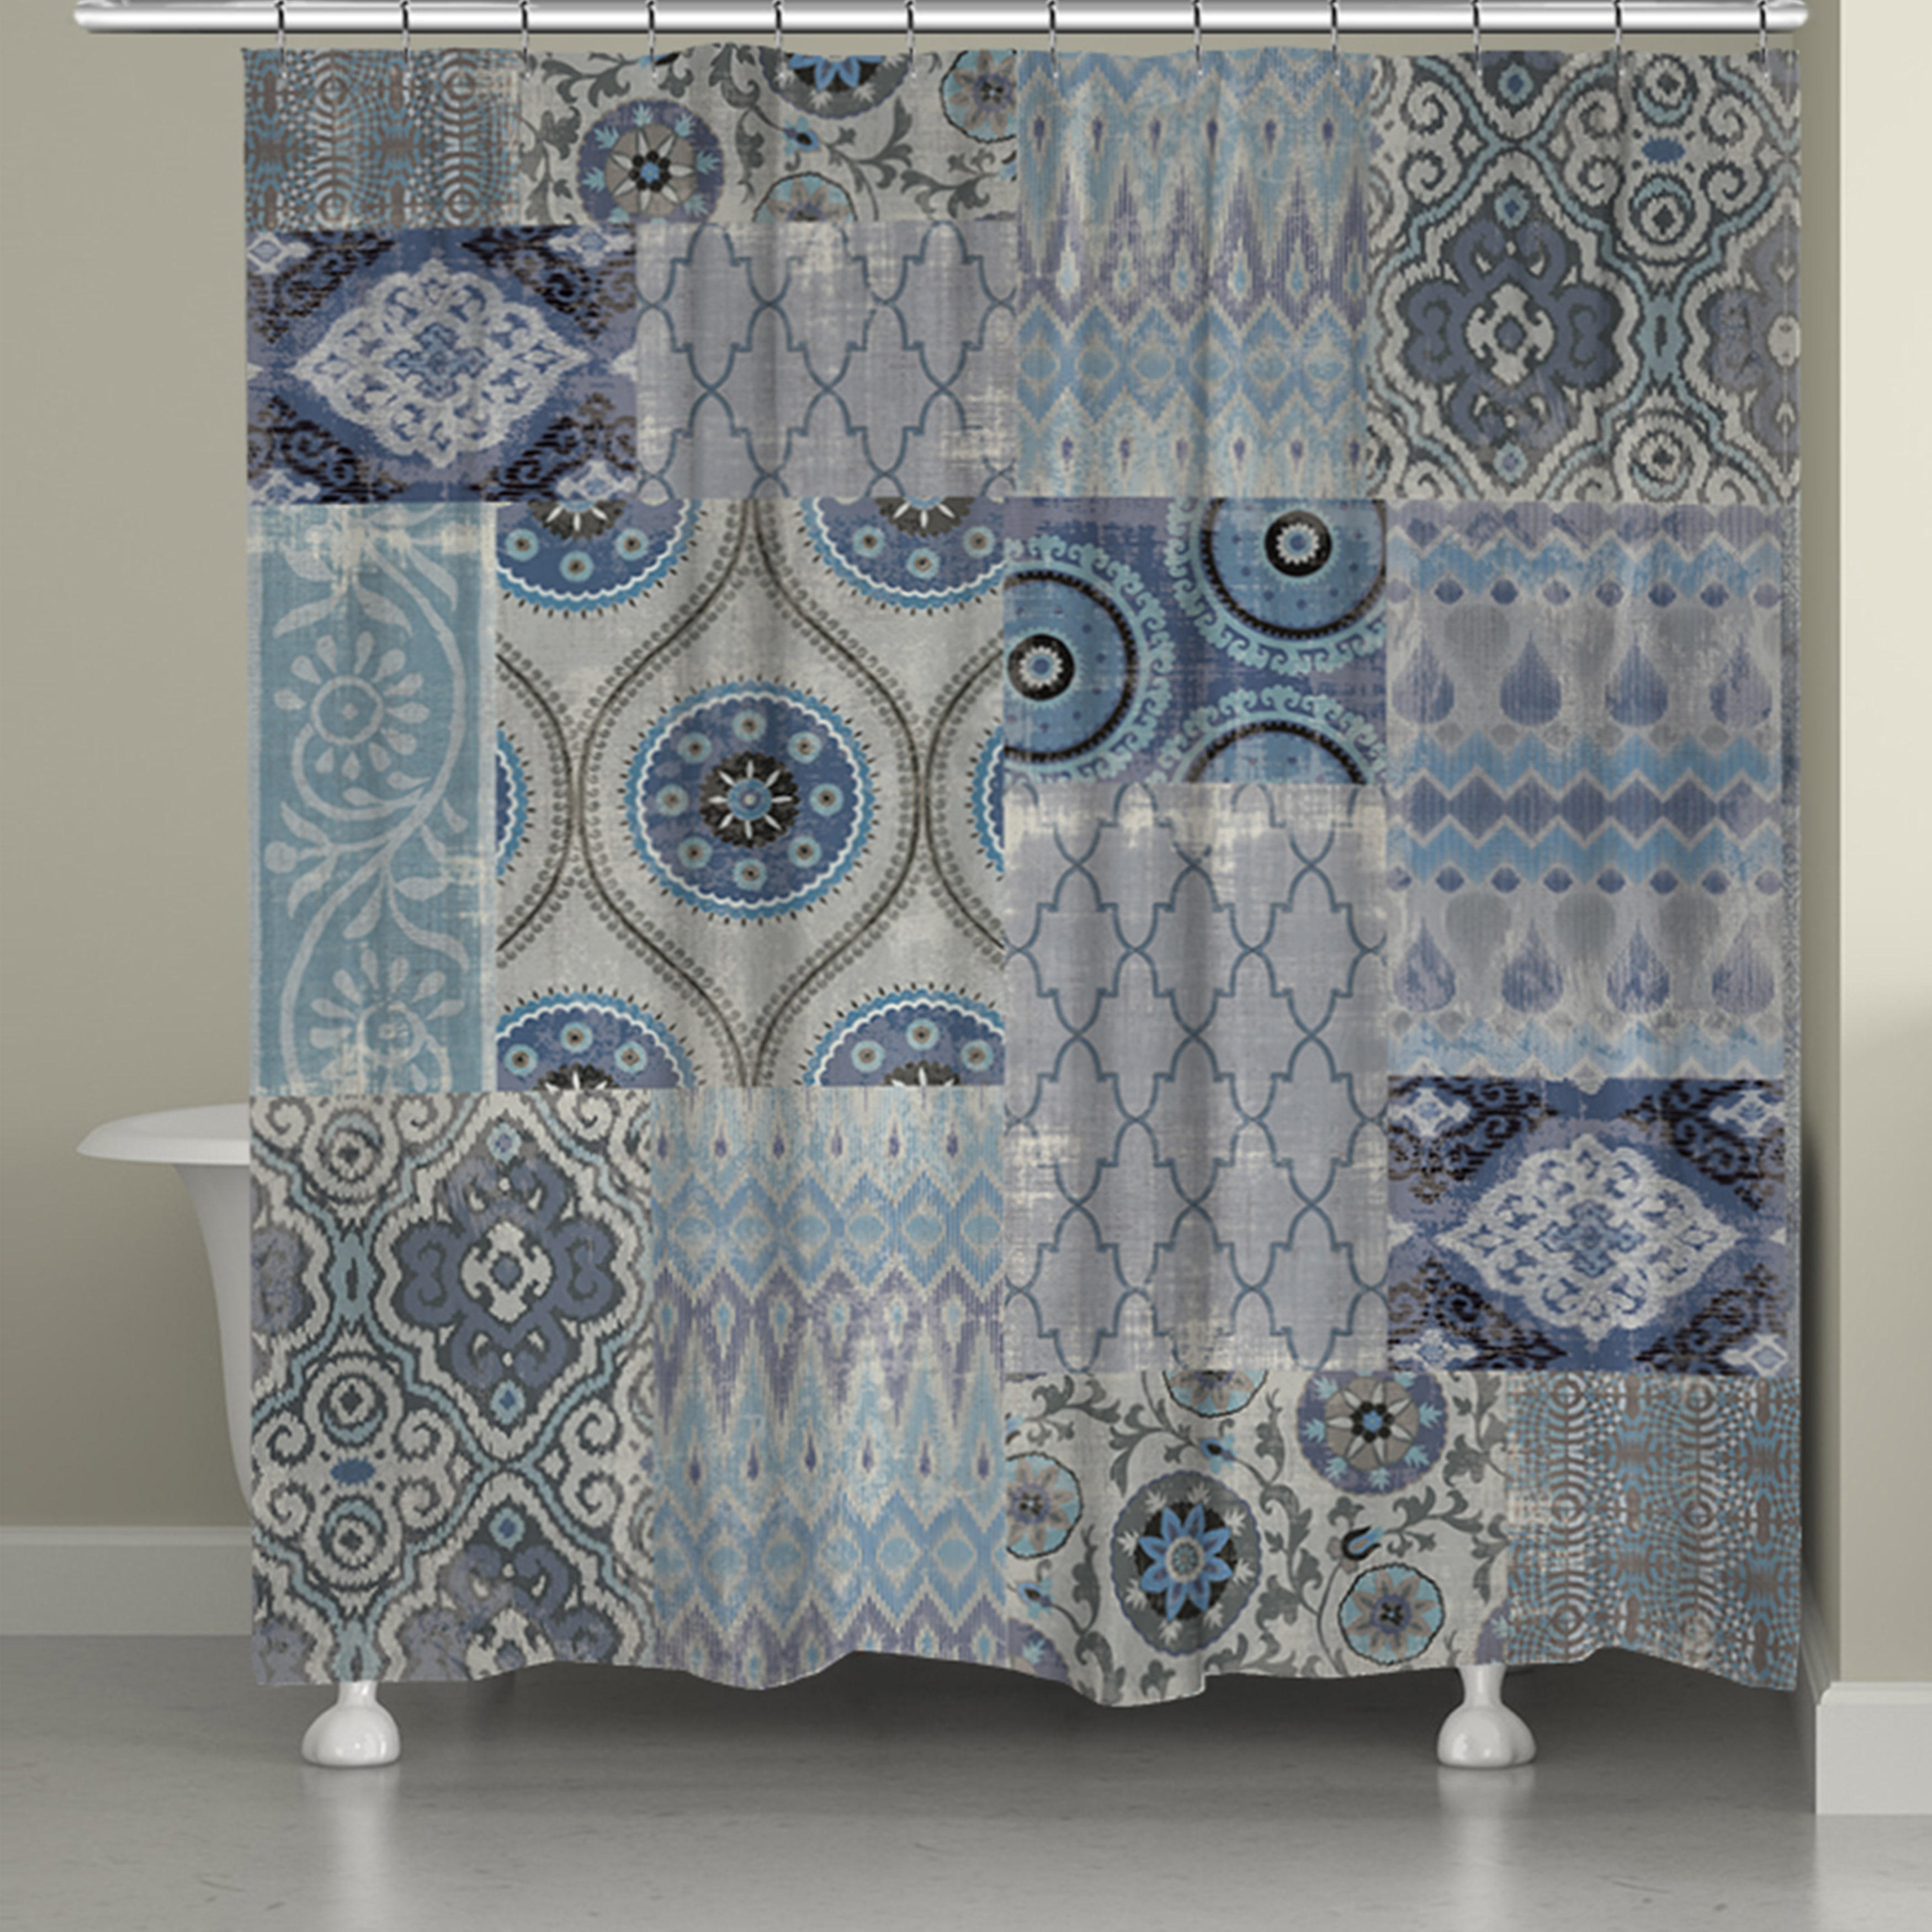 laural home blue patchwork shower curtain 71 inch x 74 inch